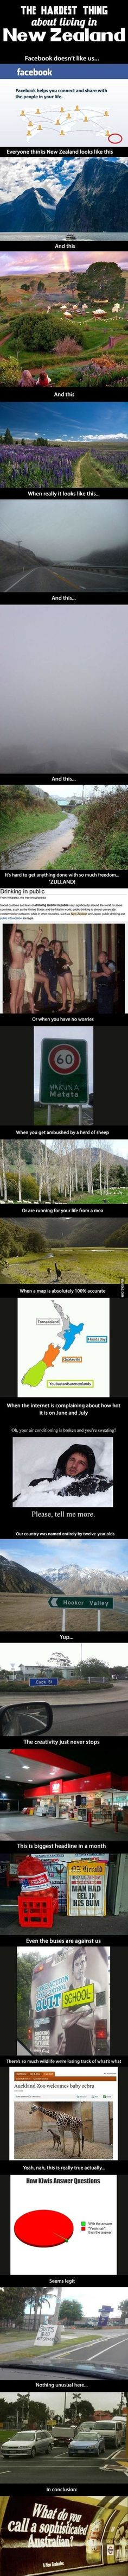 A look at New Zealand. Whenever something is said or posted about NZ I get a little excited and proud. ;)